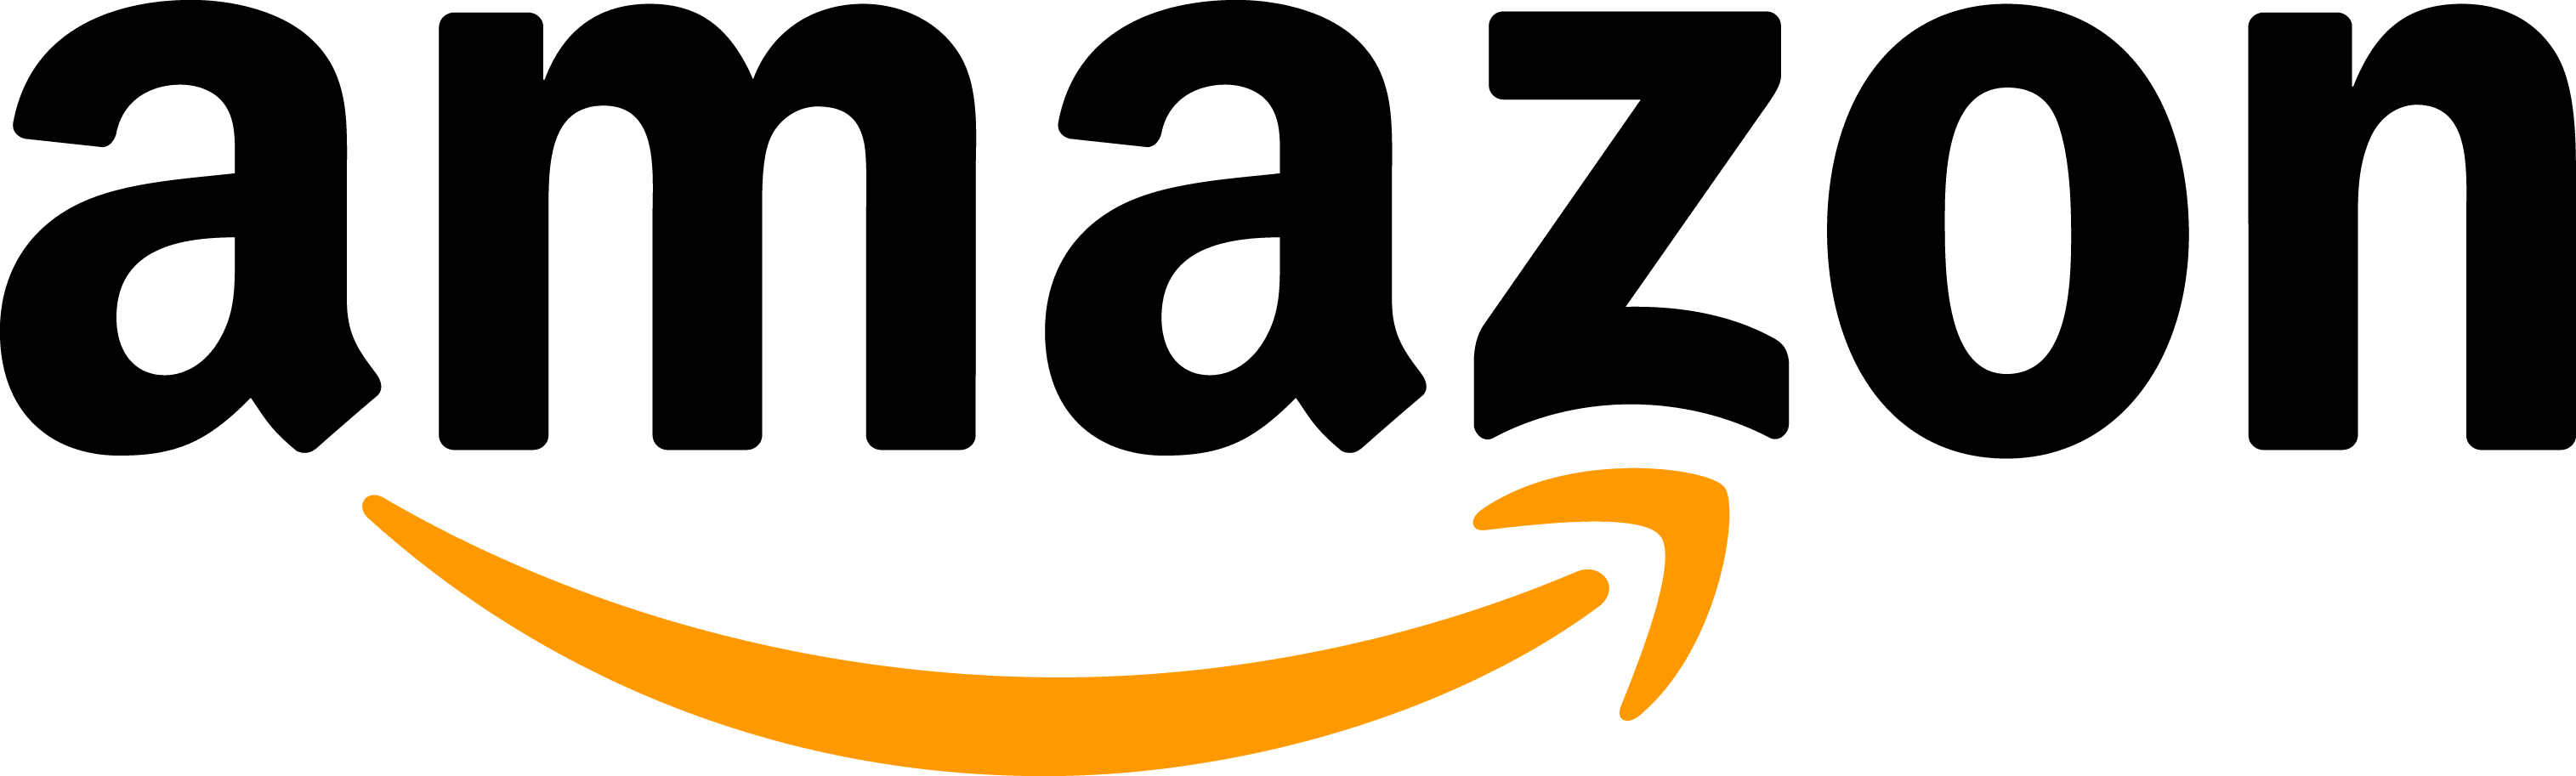 Amazon.com Logo [EPS-PDF File] Vector EPS Free Download, Logo, Icons, Brand Emblems